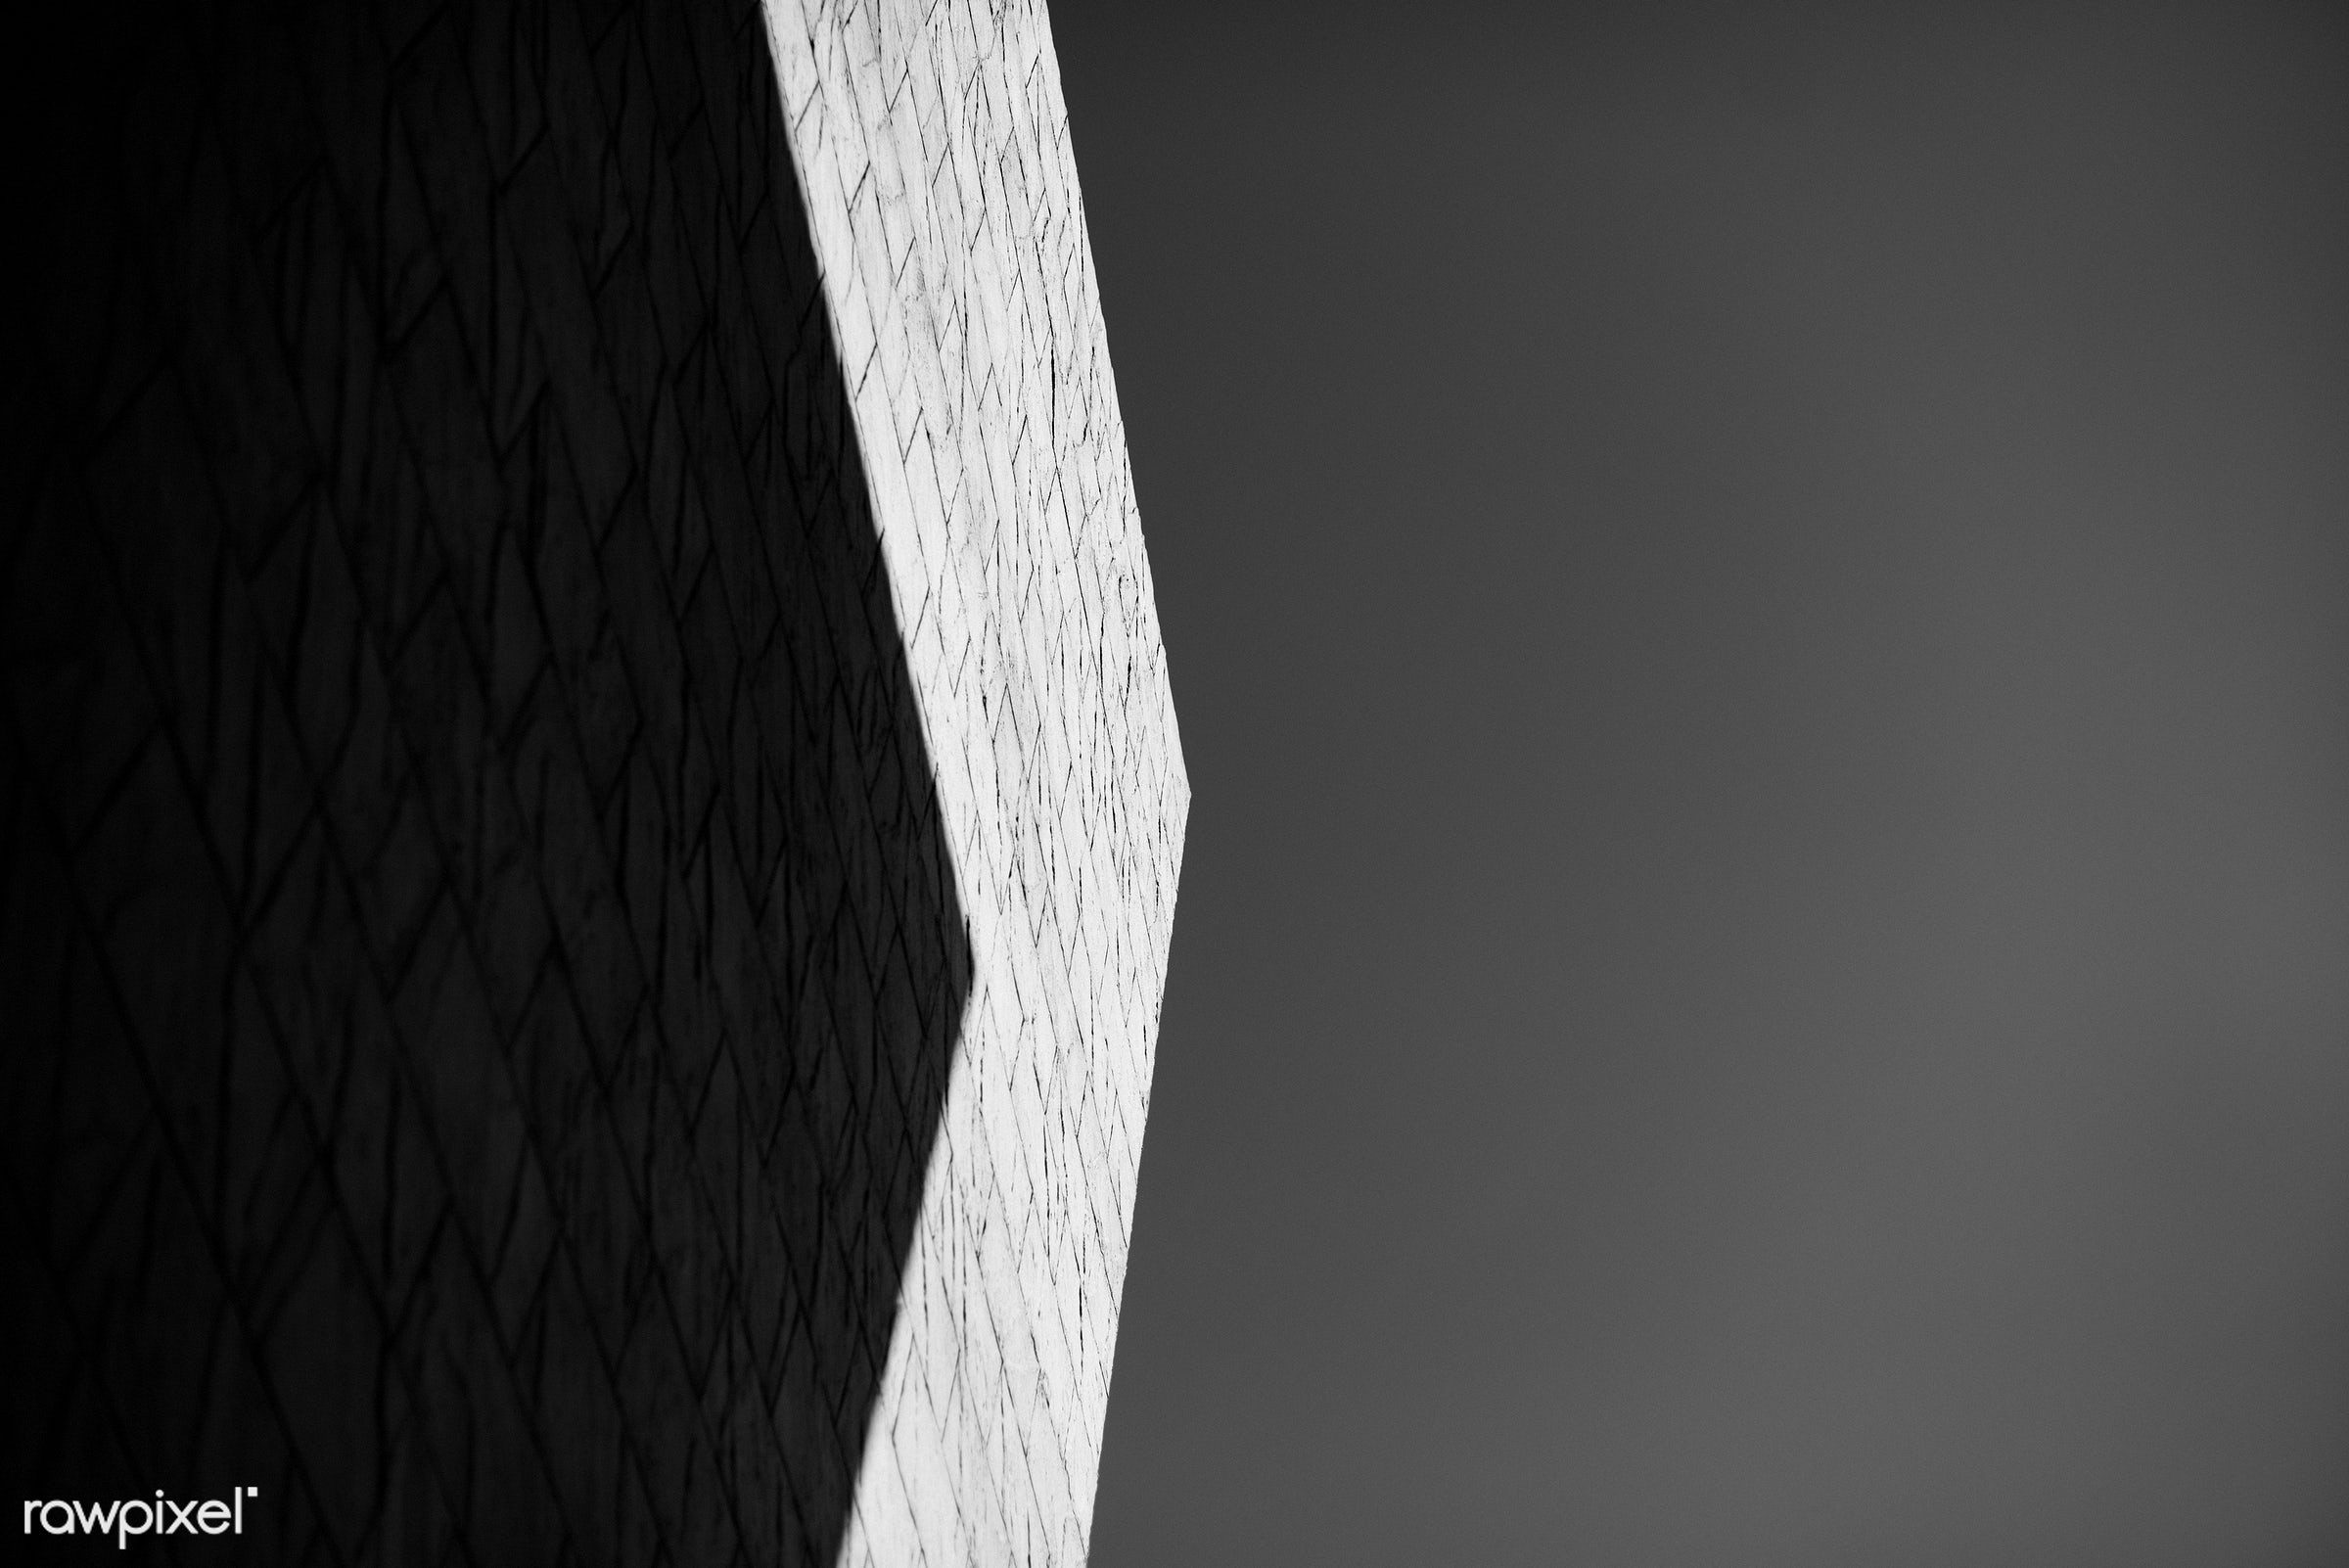 abstract, architecture, brick, building, concrete, construction, design, exterior, shadow, sky, structure, youth